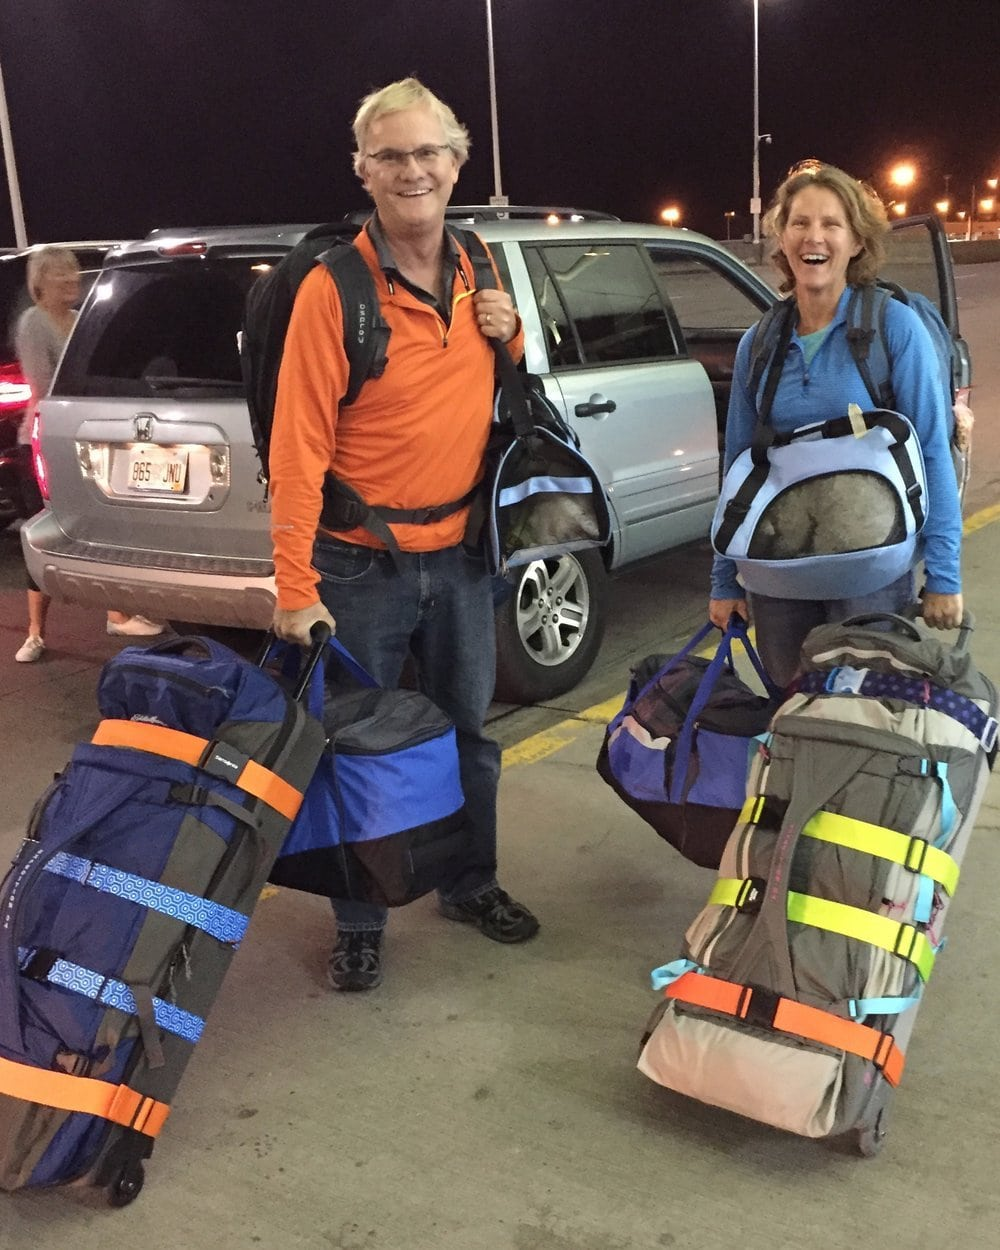 Norm and Deb with 3 bags and 1 dog each